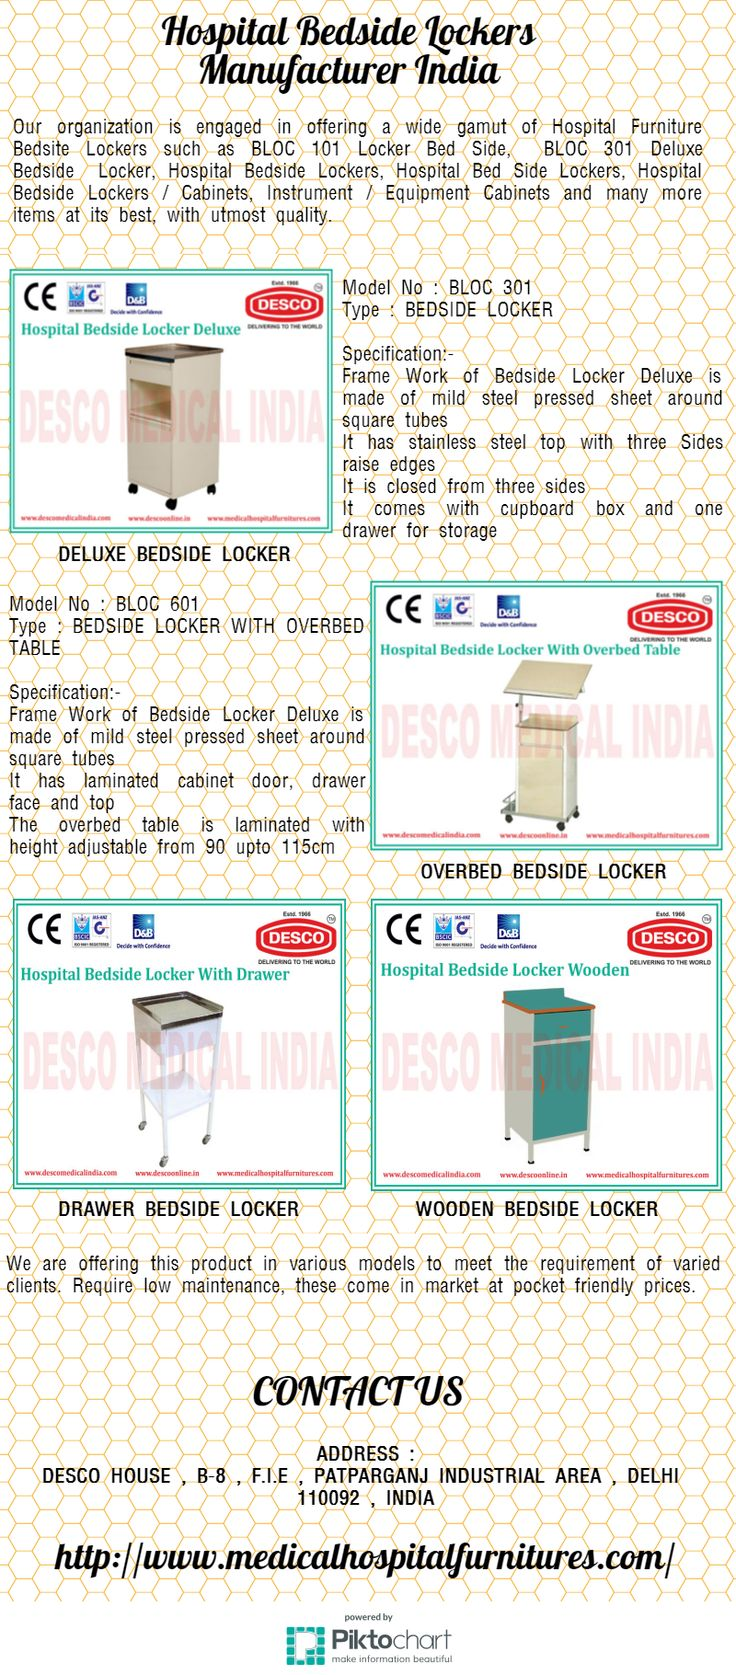 Our organization is engaged in offering a wide gamut of Hospital Furniture Bedsite Lockers such as BLOC 101 Locker Bed Side, BLOC 301 Deluxe Bedside Locker, Hospital Bedside Lockers, Hospital Bed Side Lockers, Hospital Bedside Lockers / Cabinets, Instrument / Equipment Cabinets and many more items at its best, with utmost quality.